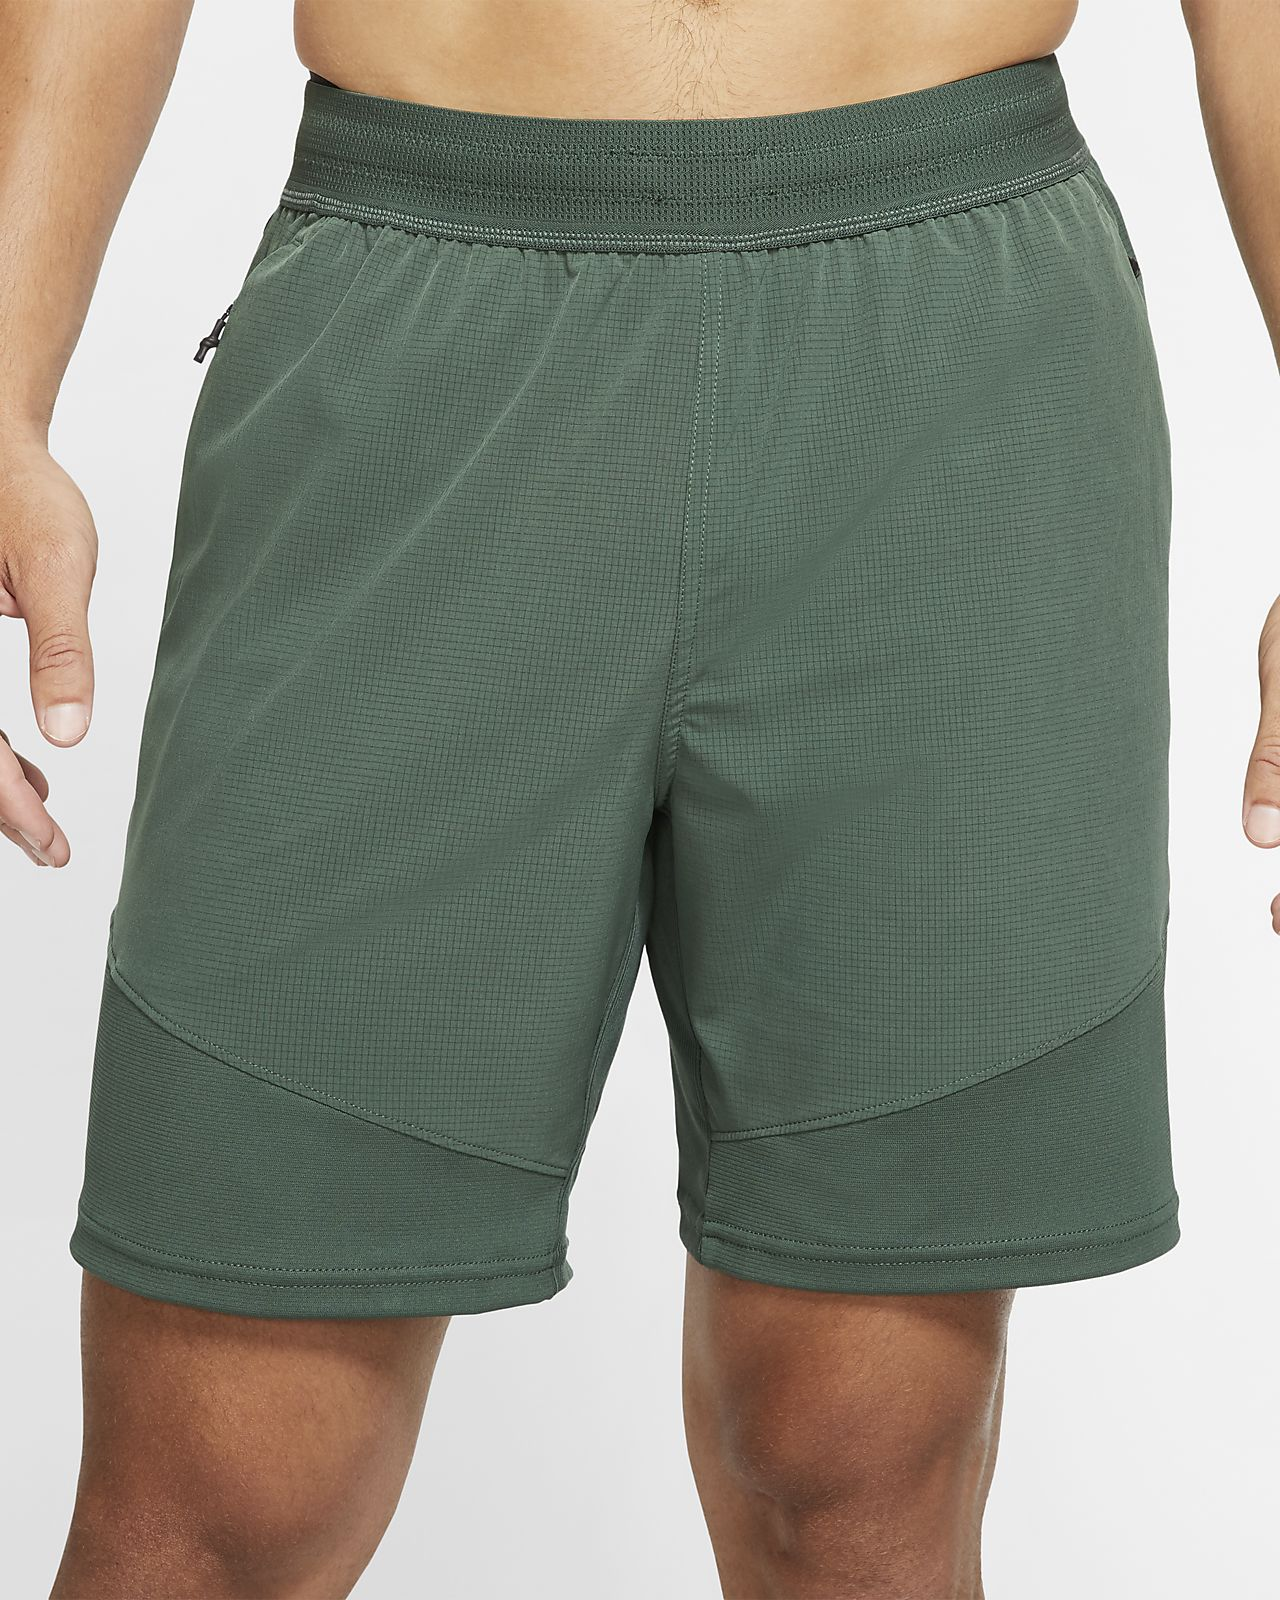 Nike Flex Tech Pack Men's Woven Training Shorts